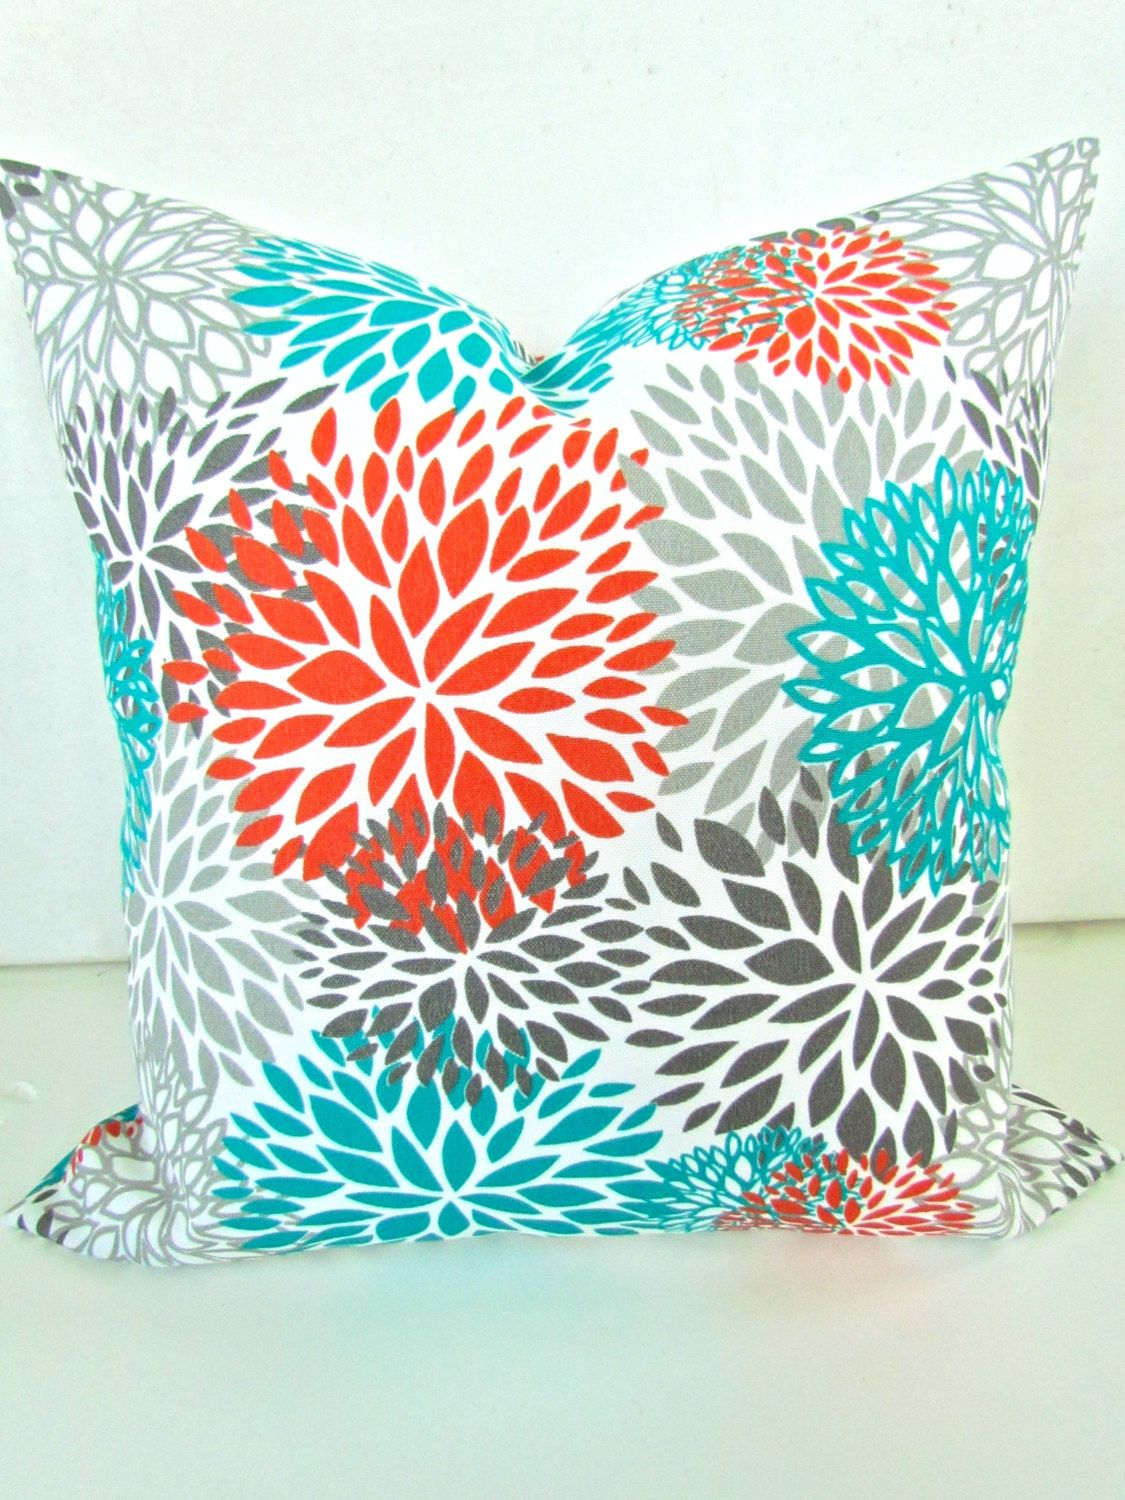 Delightful THROW PILLOWS 18x18 Orange Teal Throw Pillow Covers 18 X 18 Aqua Turquoise  Gray Decorative Throw